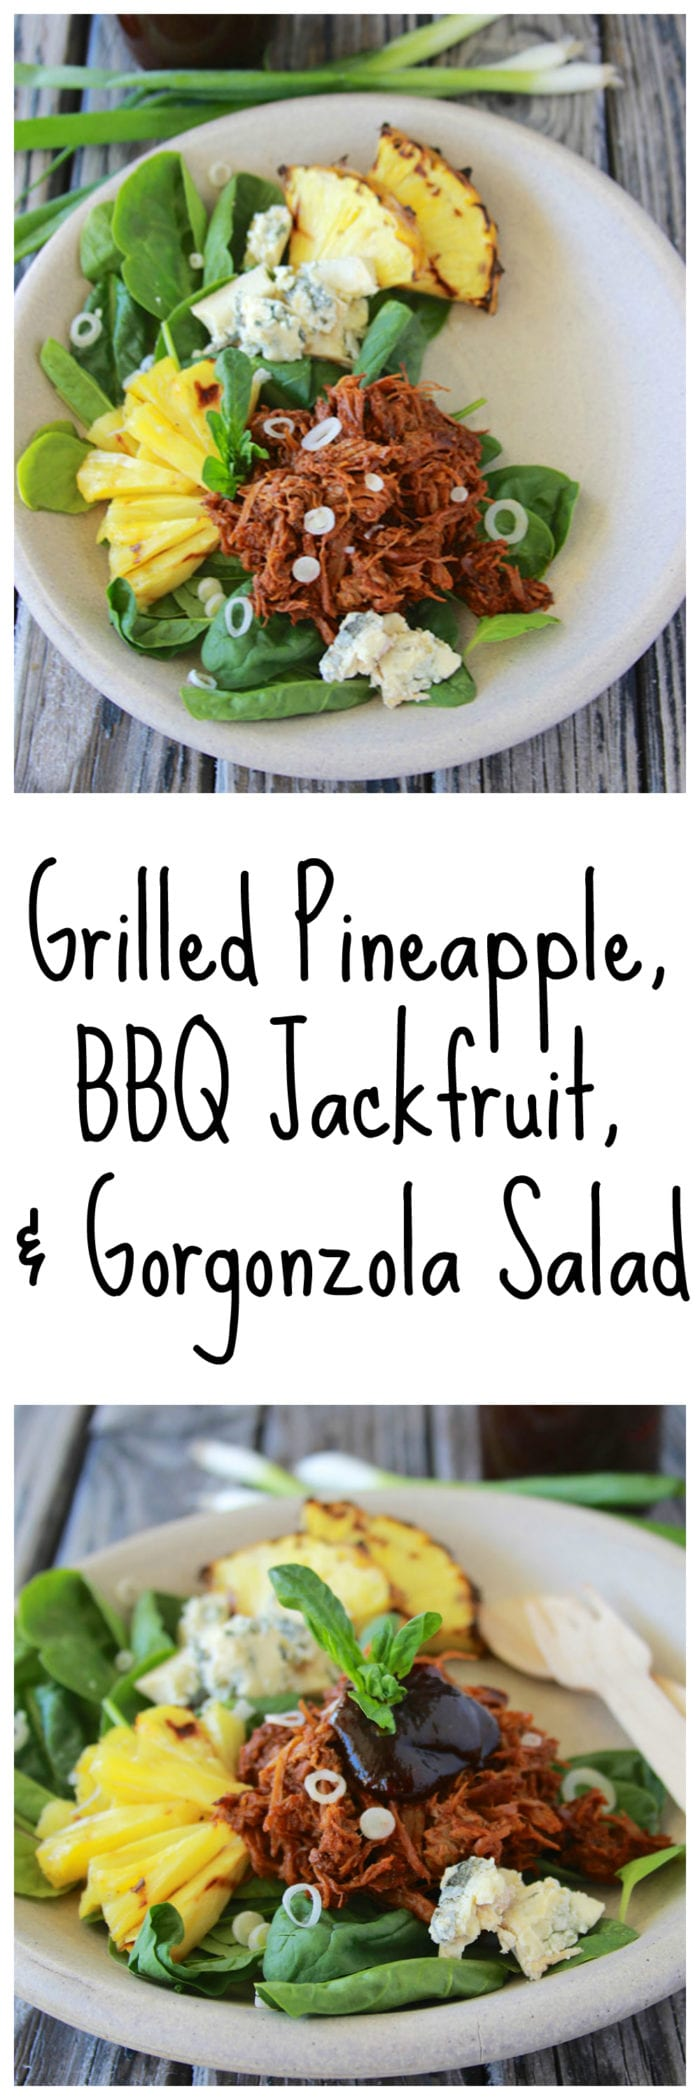 Grilled Pineapple, BBQ Jackfruit, and Gorgonzola Salad is quick and easy to make for your summertime lunches! www.cookingwithruthie.com